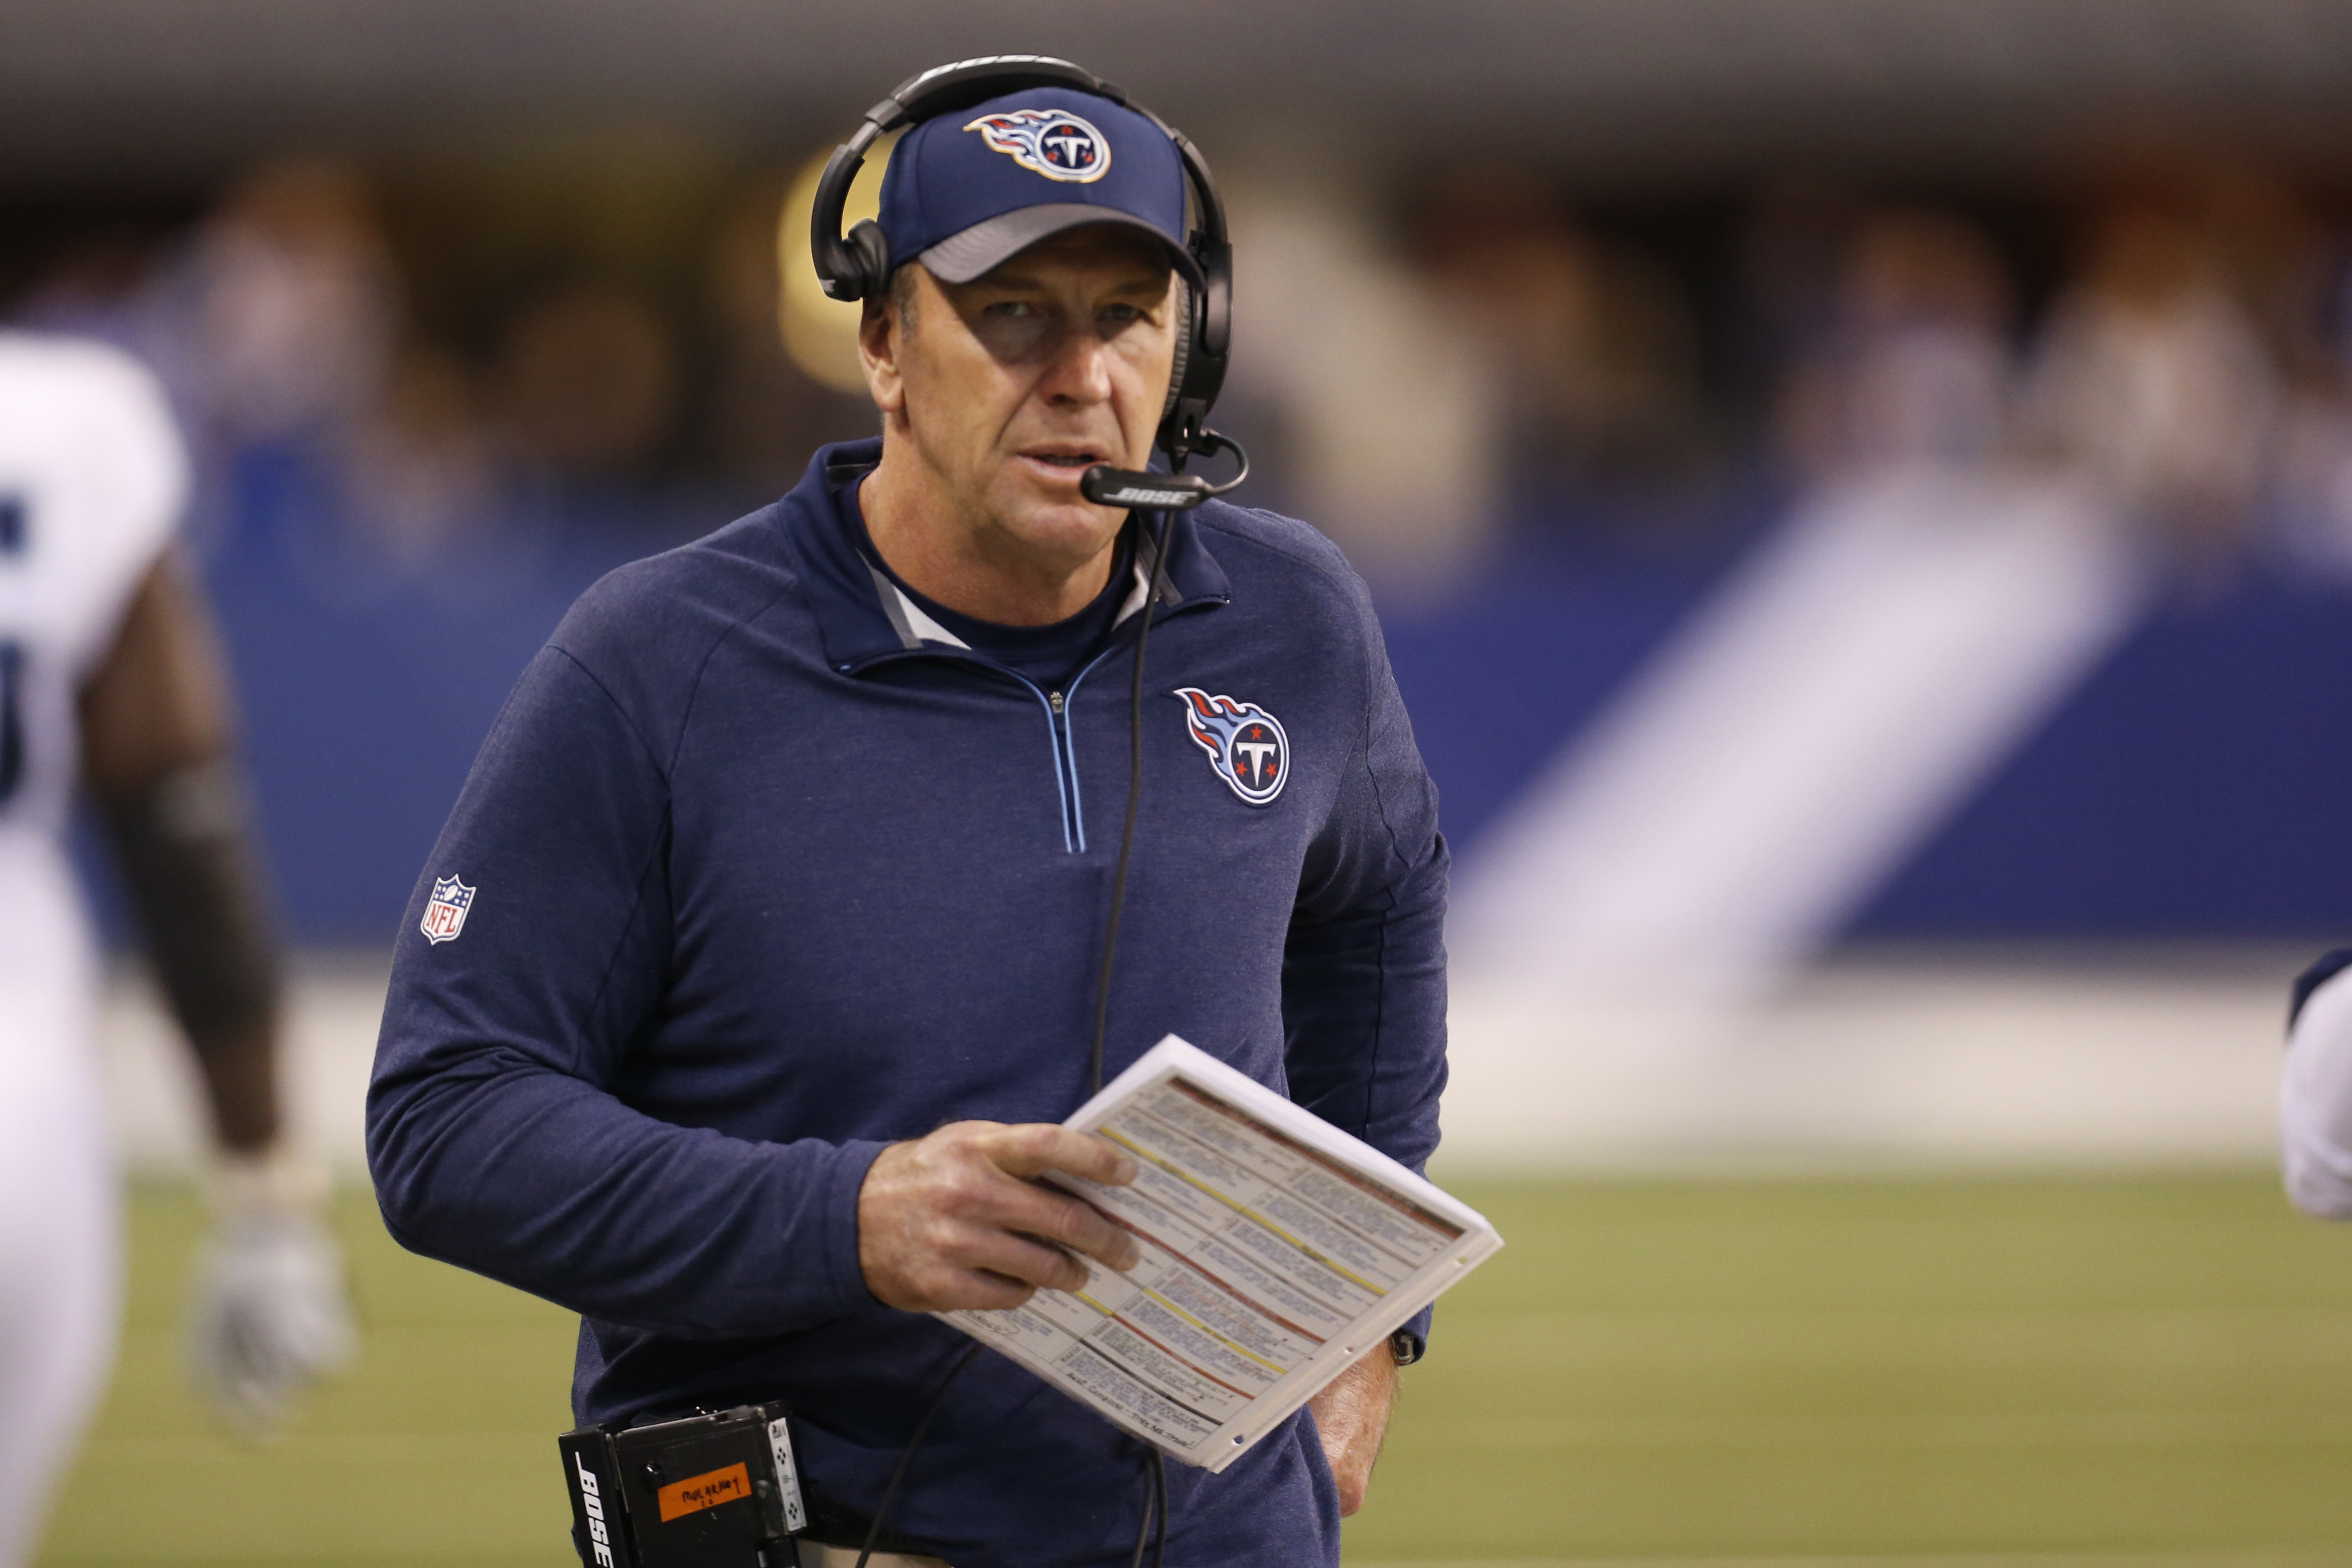 FILE - In this Sunday, Jan. 3, 2016 file photo, Tennessee Titans interim head coach Mike Mularkey looks on during the second half of an NFL football game against the Indianapolis Colts in Indianapolis. The Tennessee Titans have hired Mike Mularkey as thei